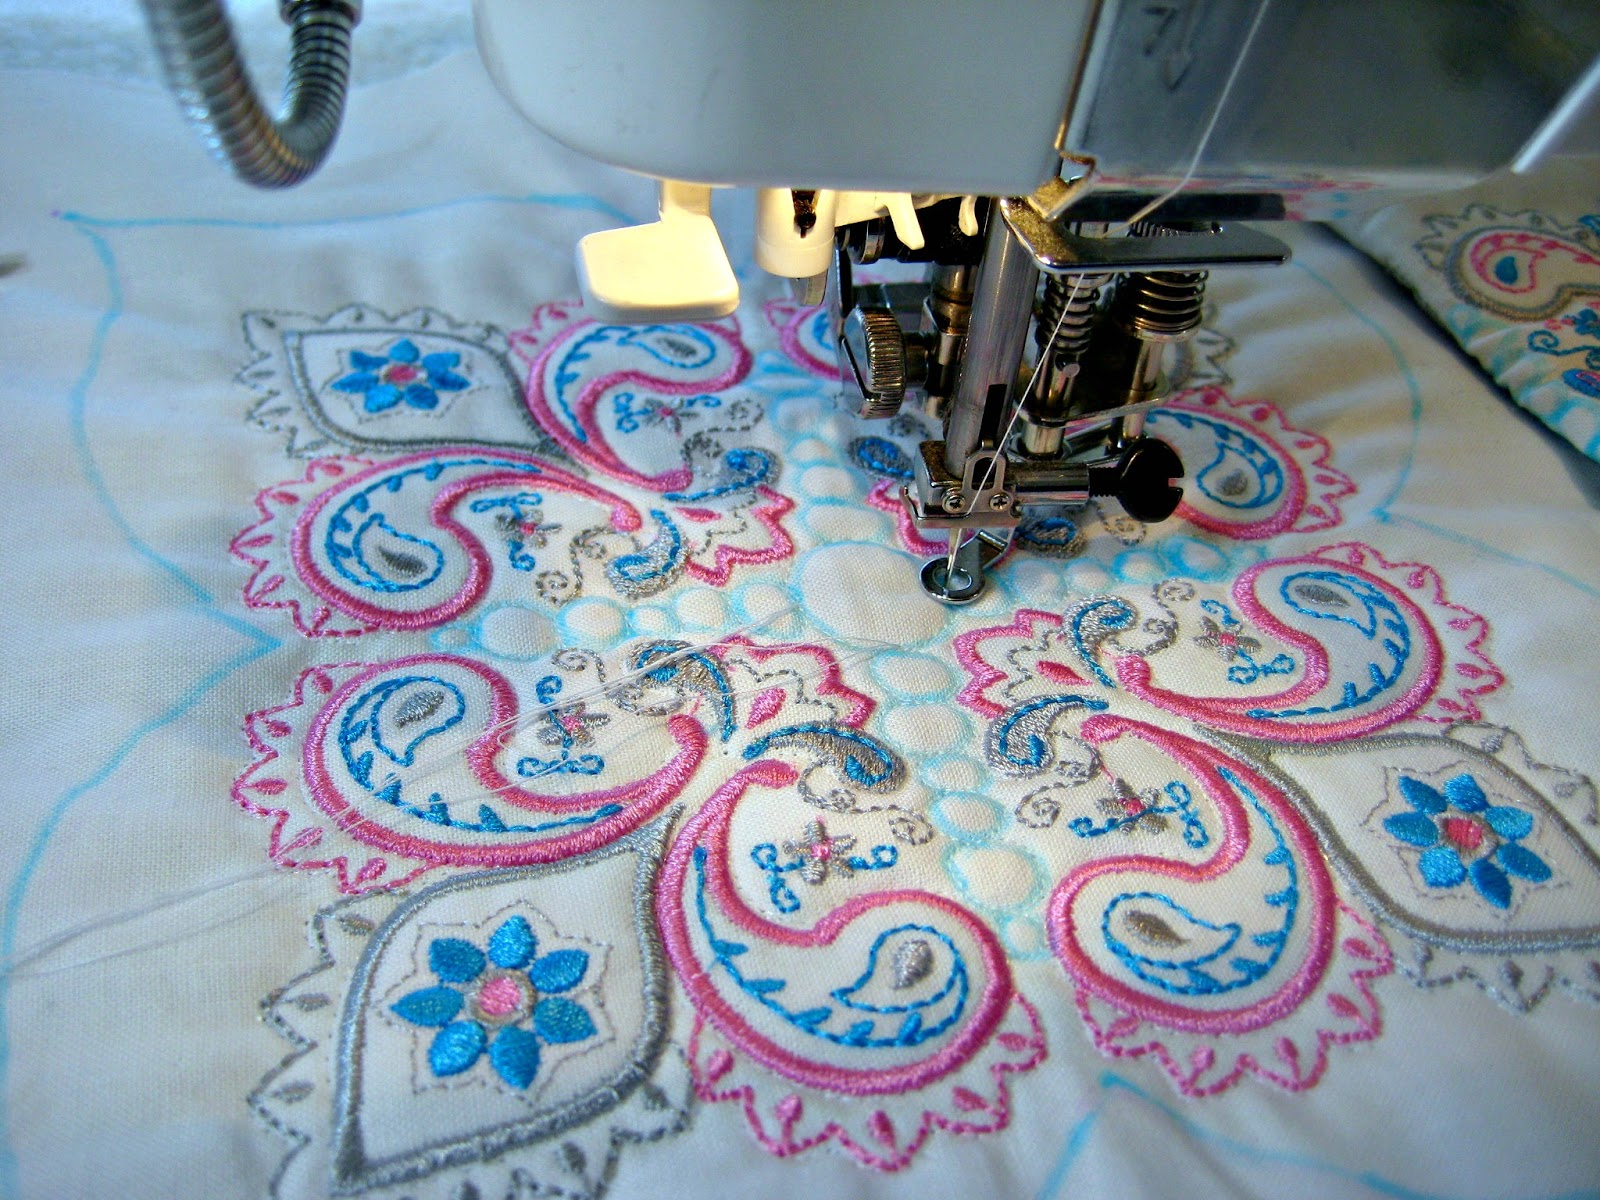 Embroidered and quilted table runner